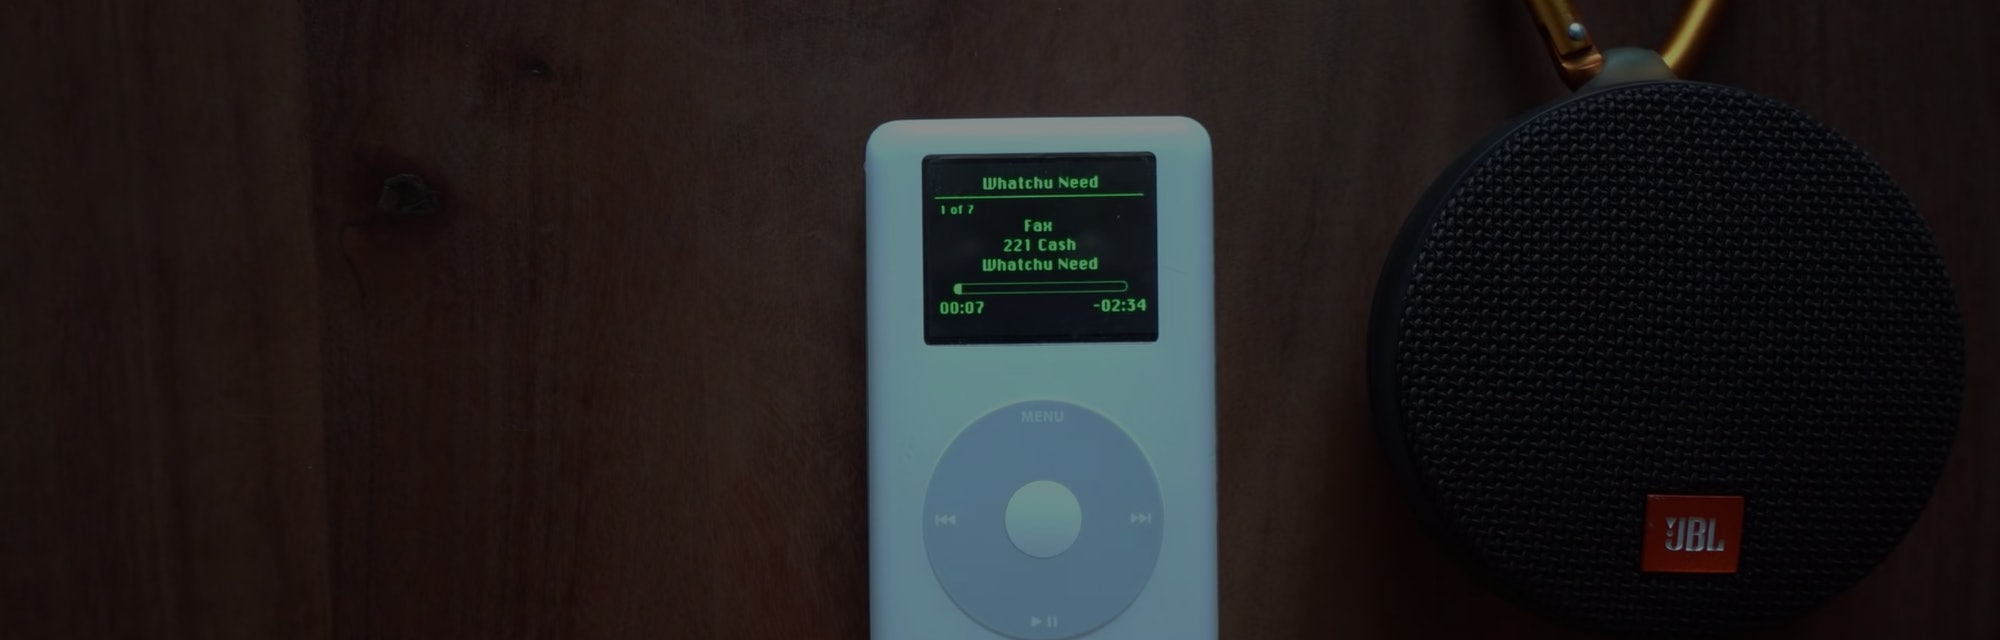 A screenshot of a 17-year-old iPod with Spotify streaming on it. It is placed next to a bluetooth speaker on a wooden desk.